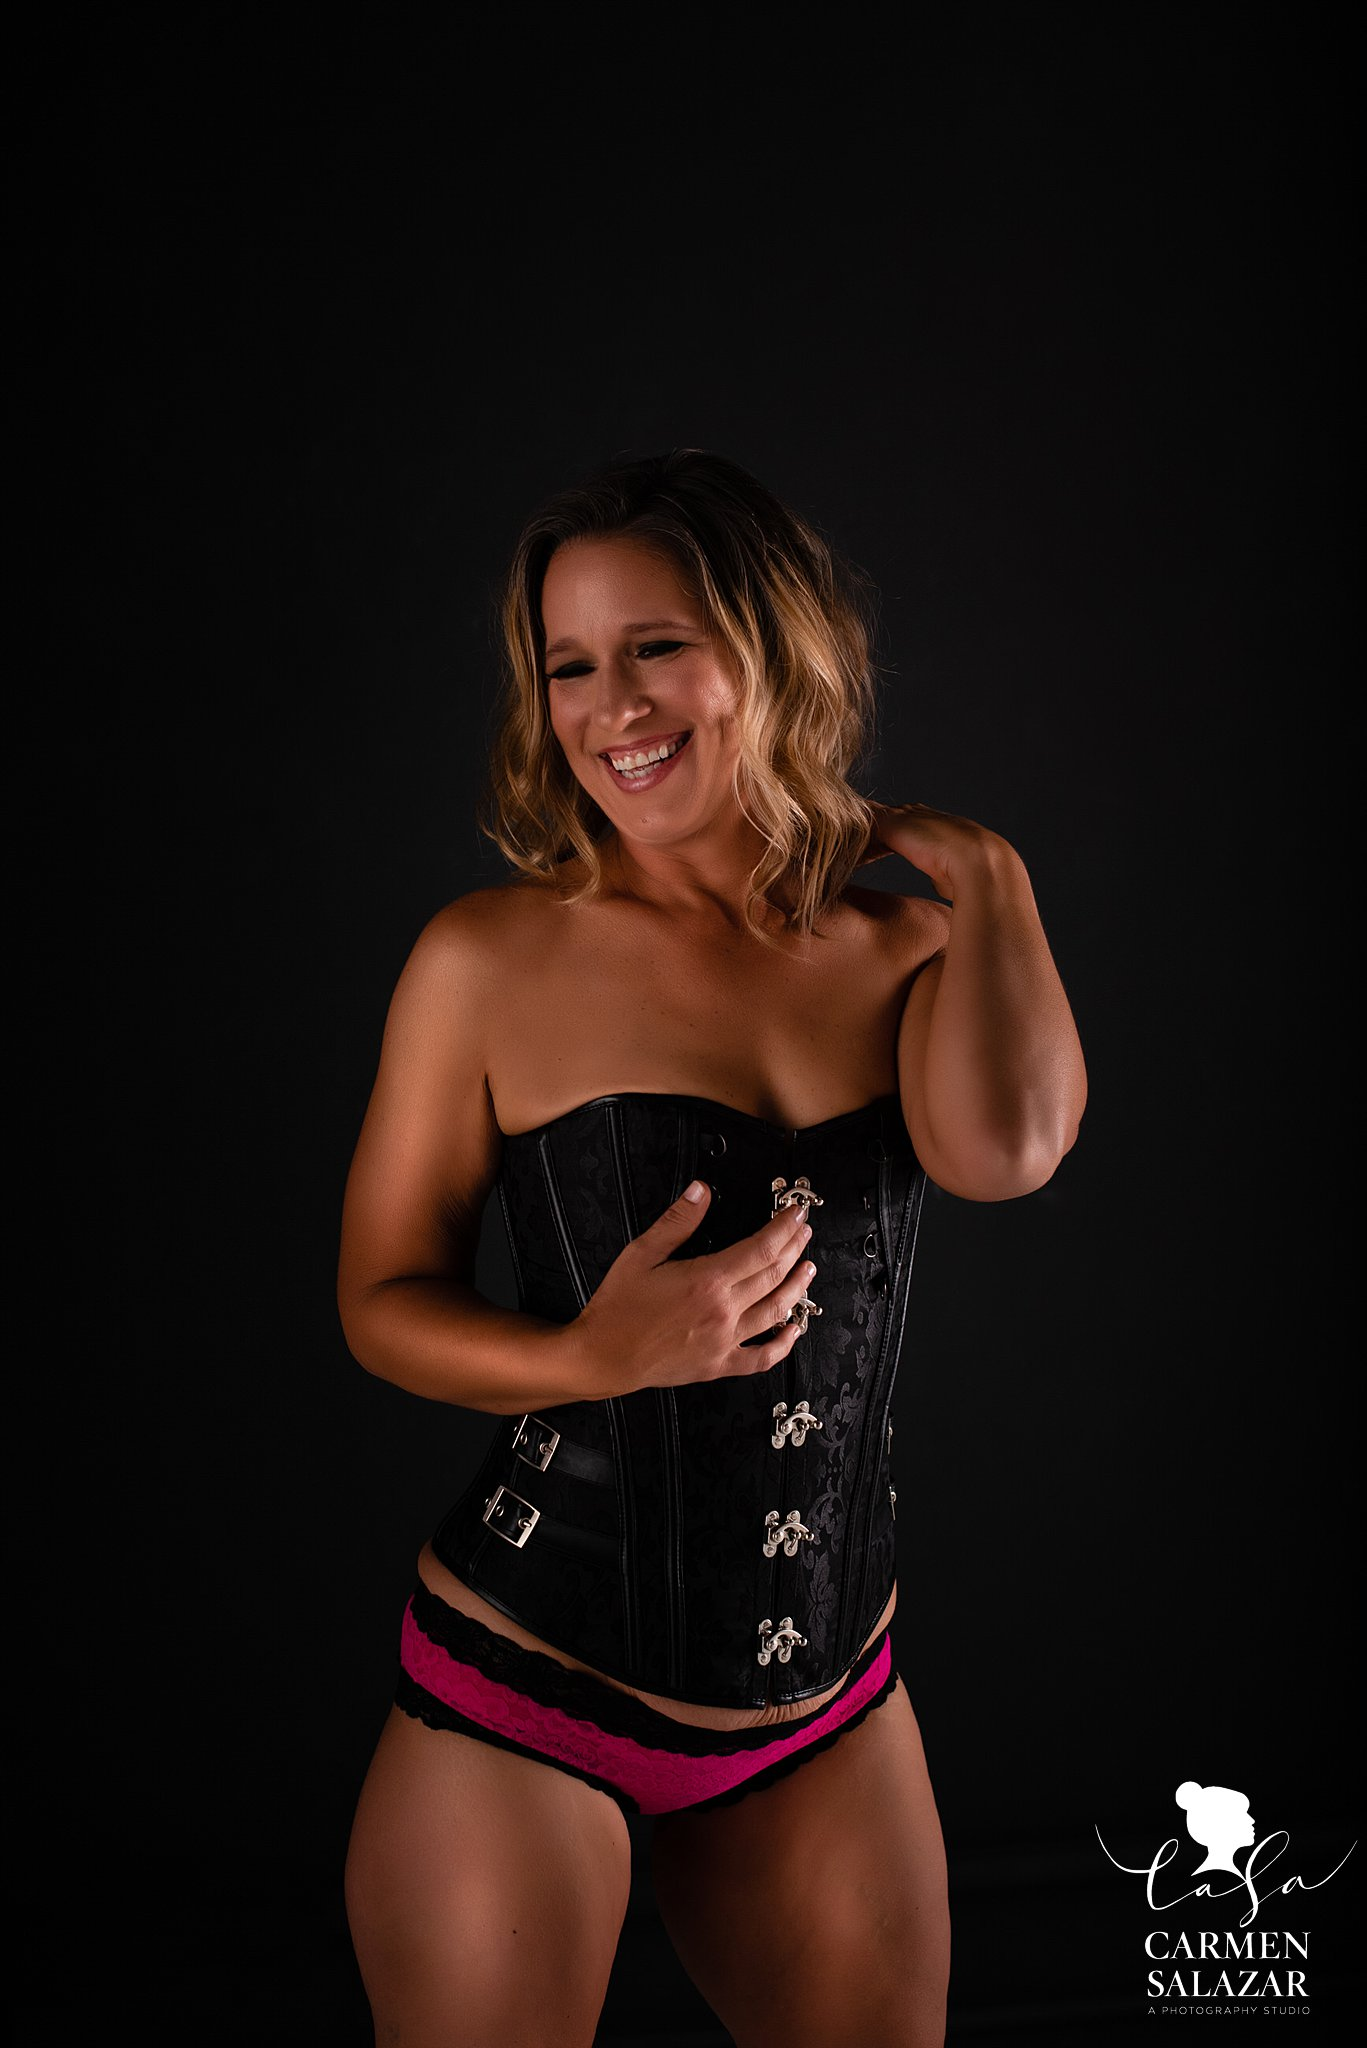 Smiling, sexy photo of woman in black corset